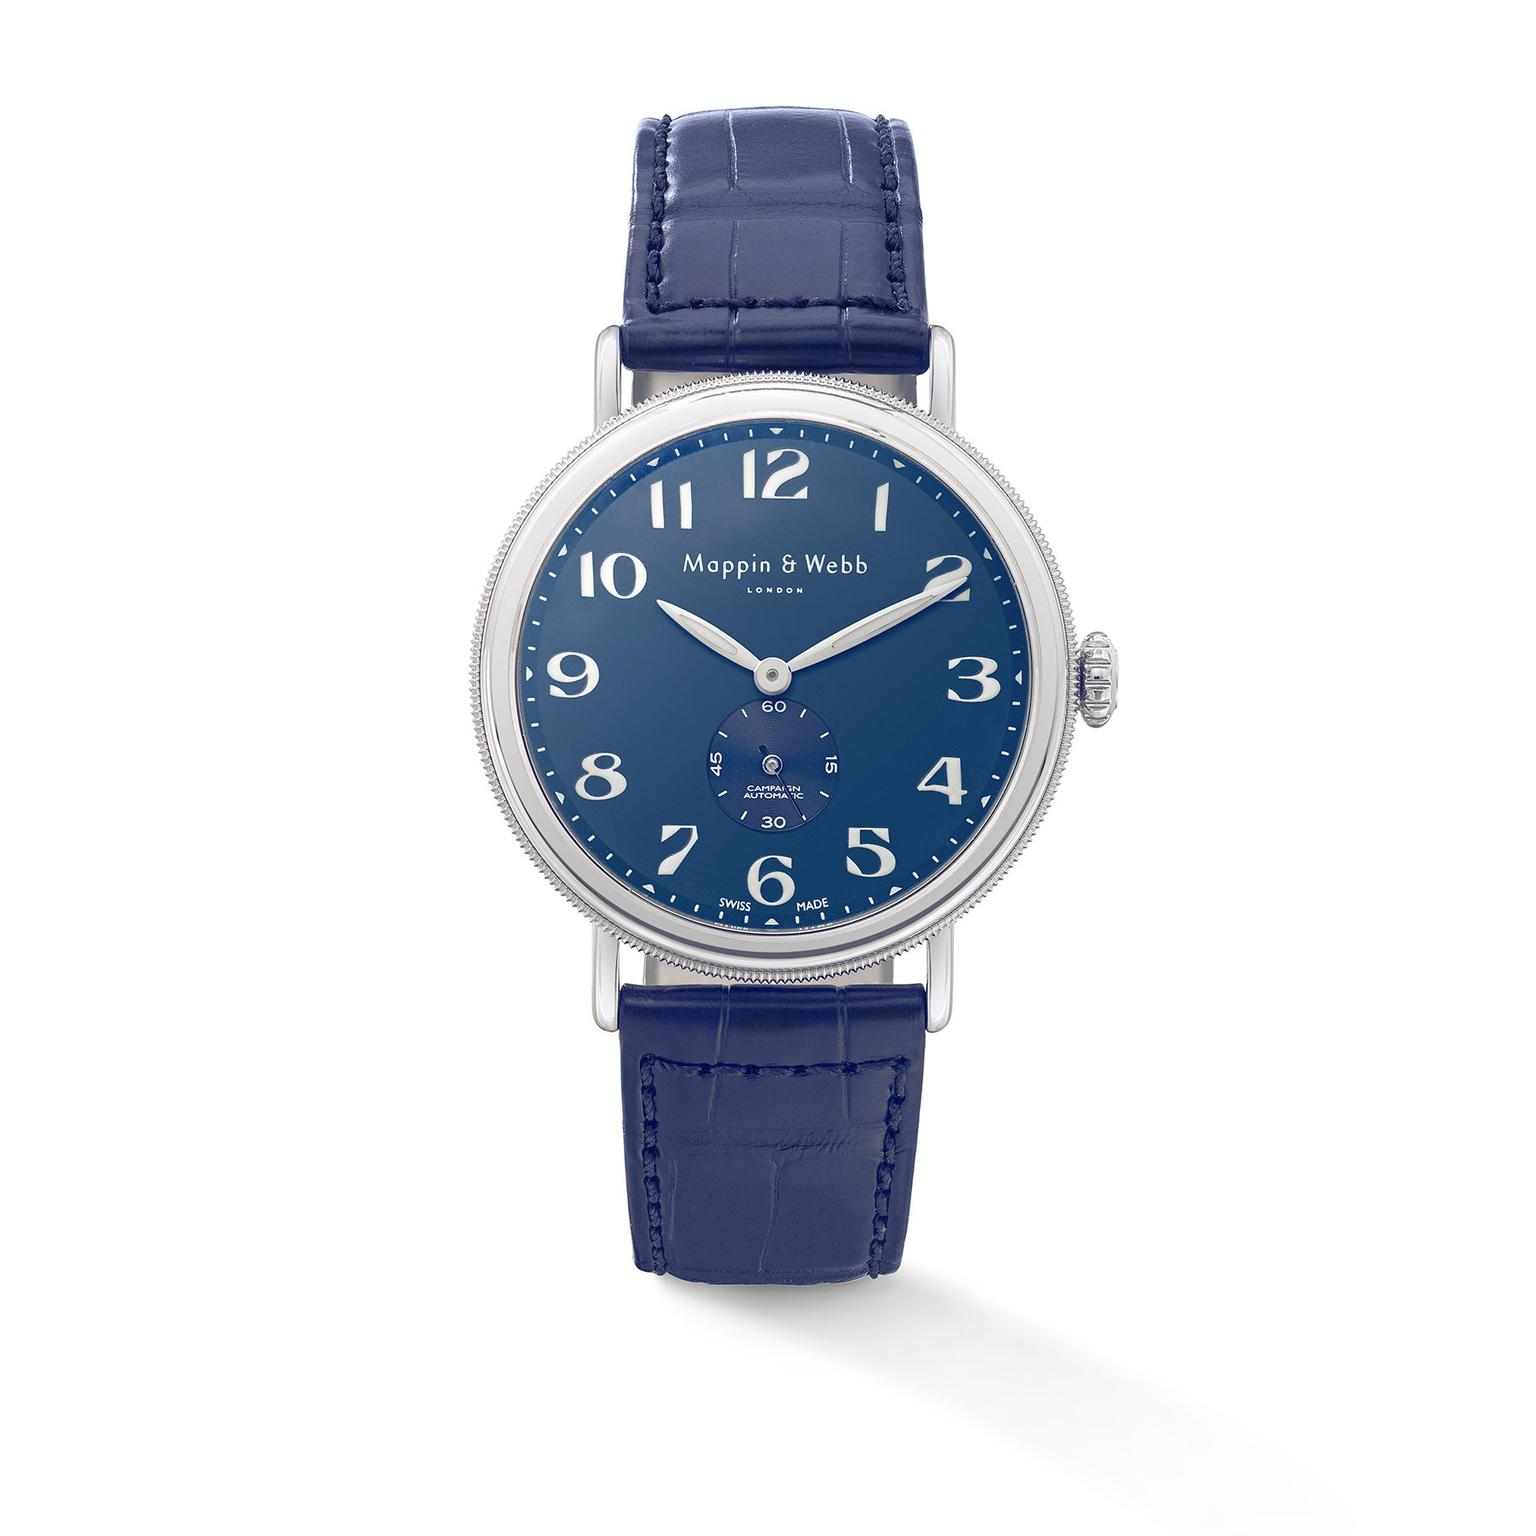 Mappin & Webb Campaign Automatic - blue crocodile skin strap and blue dial